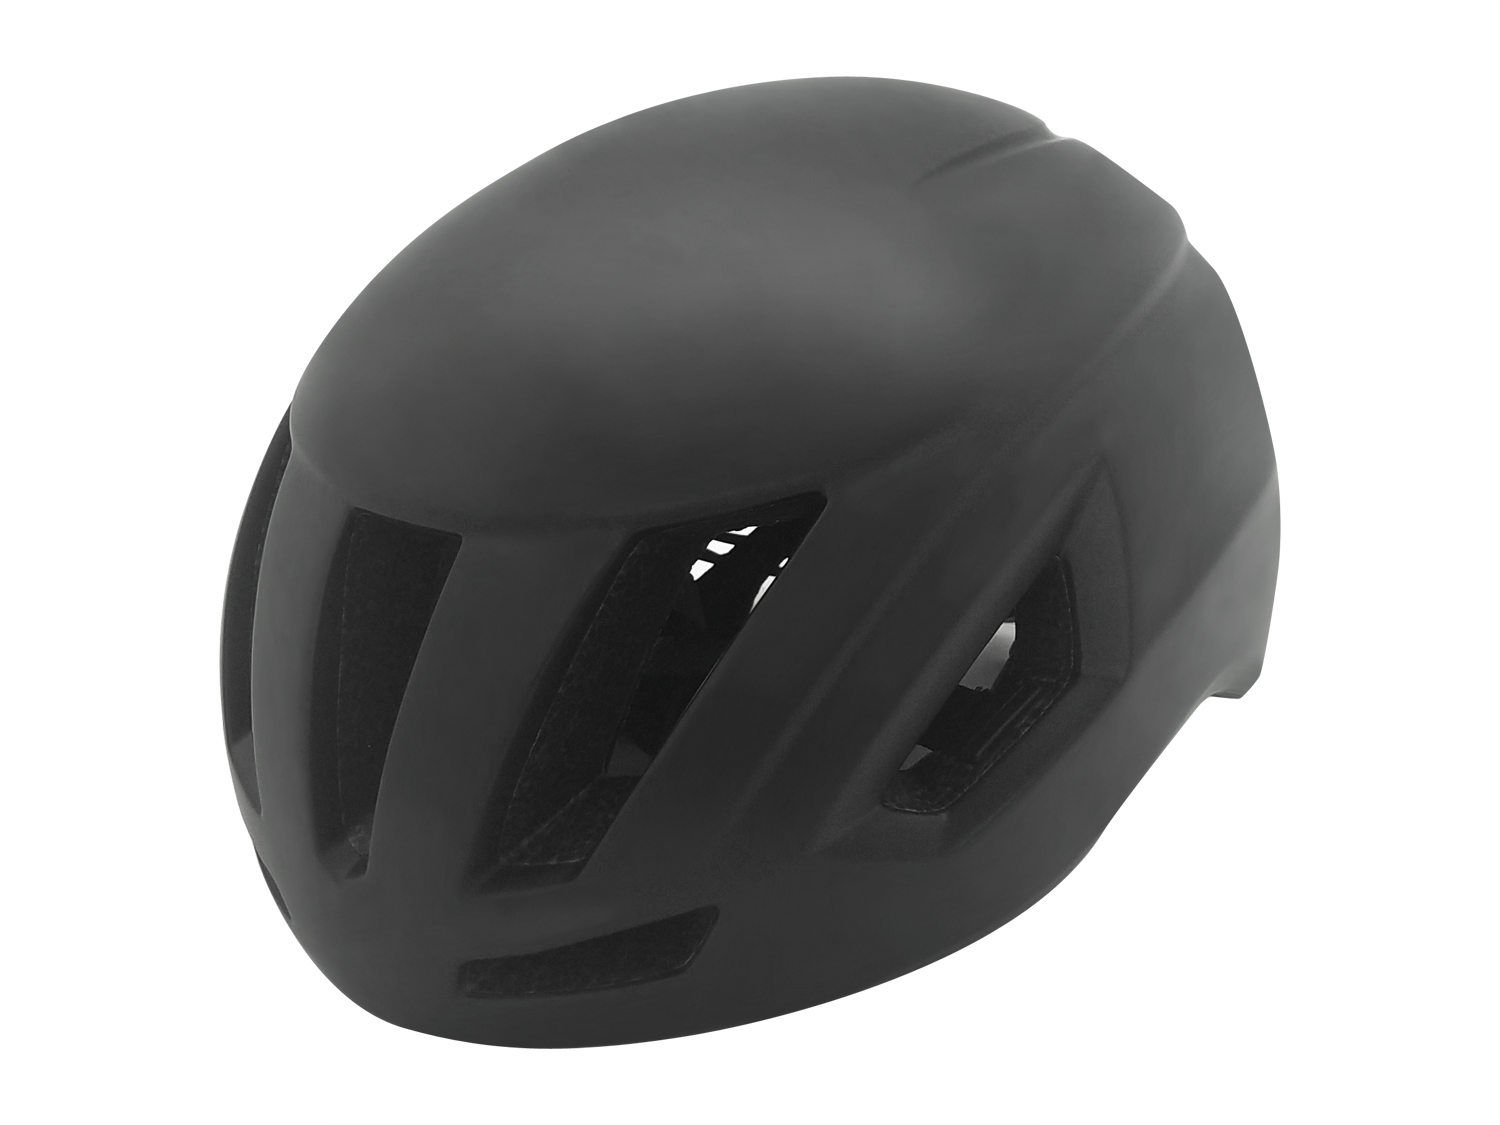 High Performance Classic Road Bike Helmet With In-Mold Technology